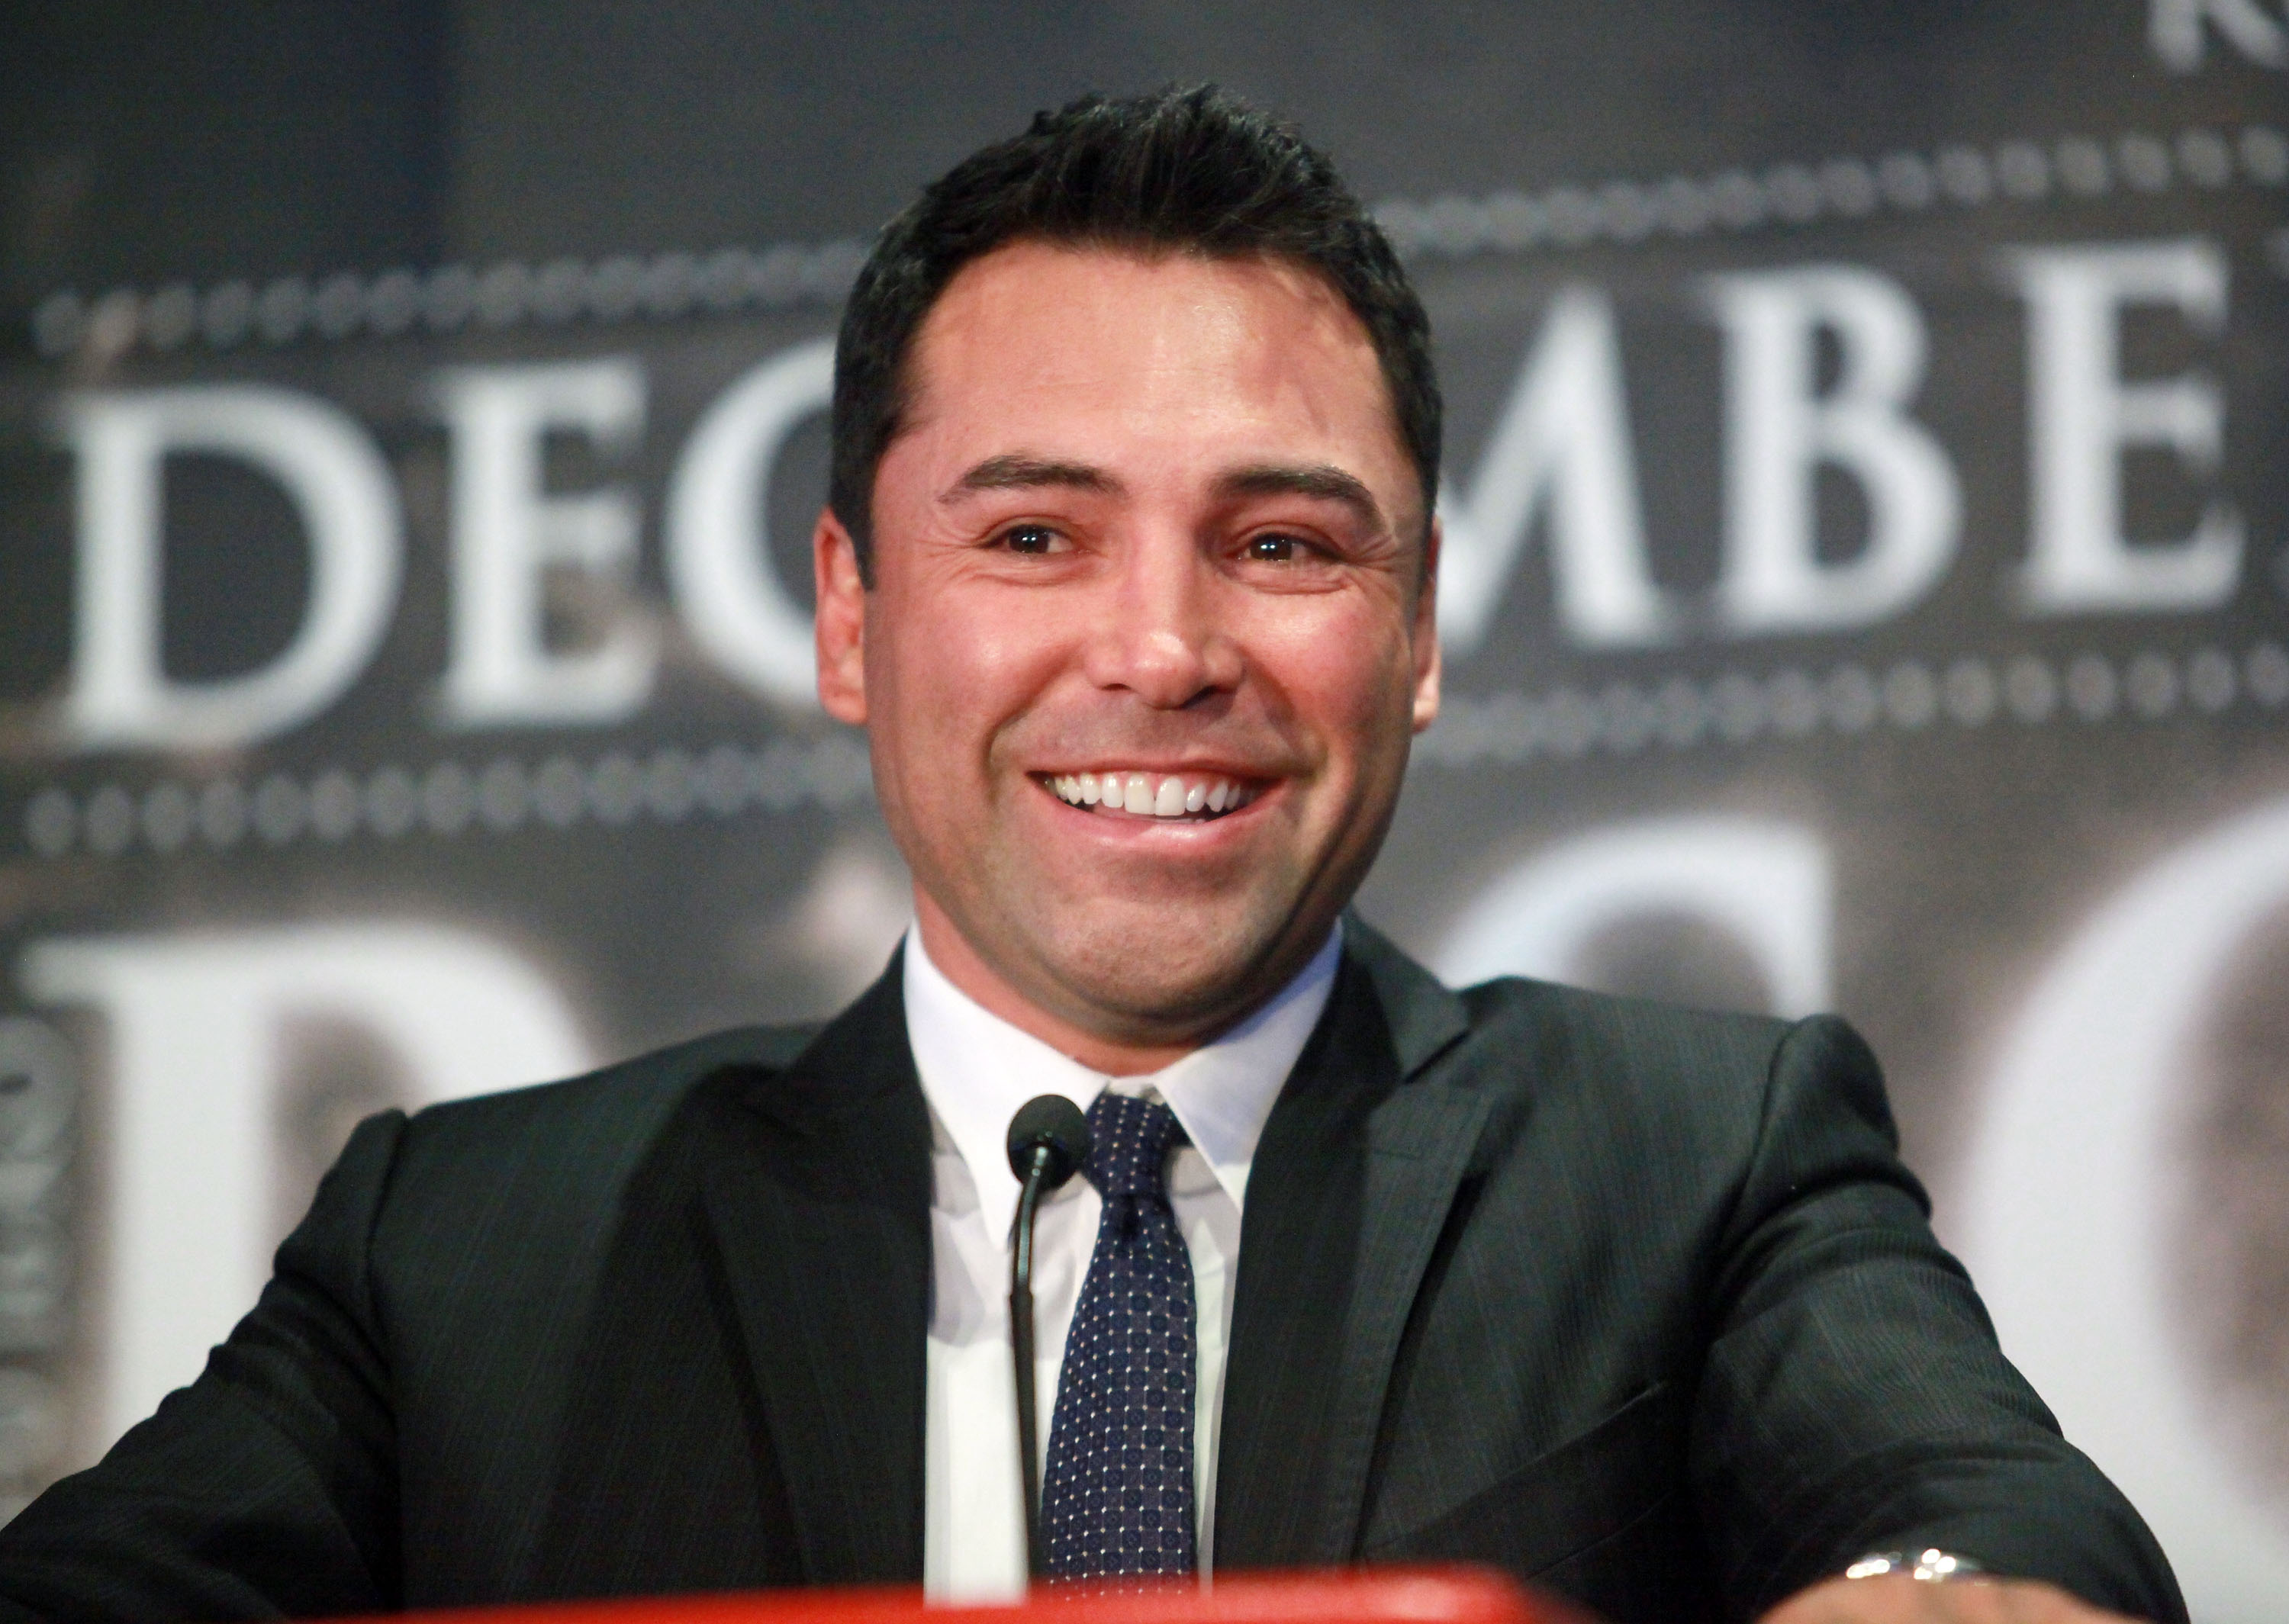 Oscar de la Hoya earned a  million dollar salary - leaving the net worth at 200 million in 2017